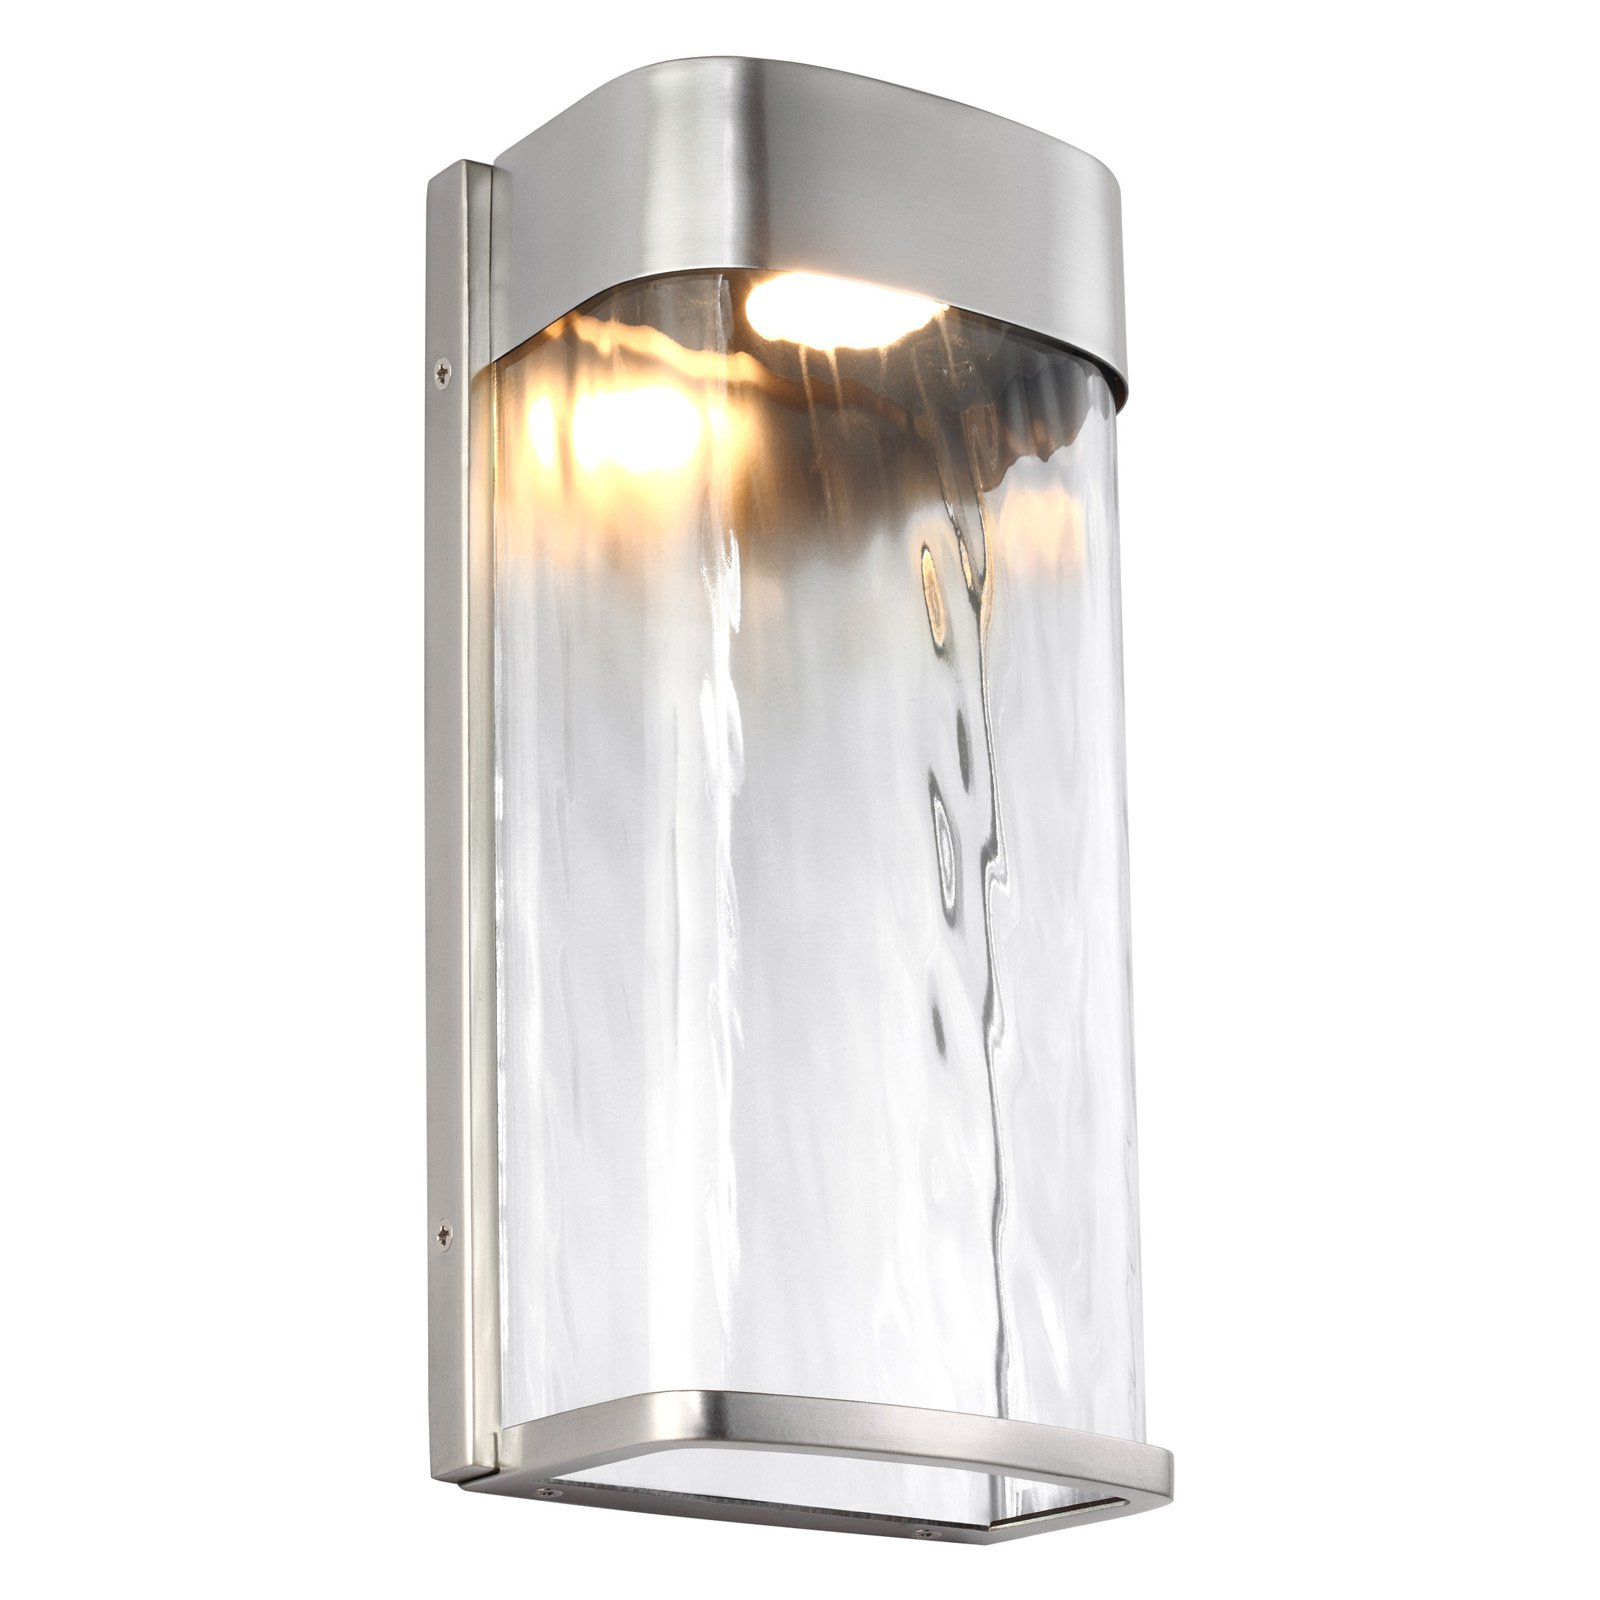 Feiss Bennie LED Outdoor Wall Lantern - Painted Brushed Steel